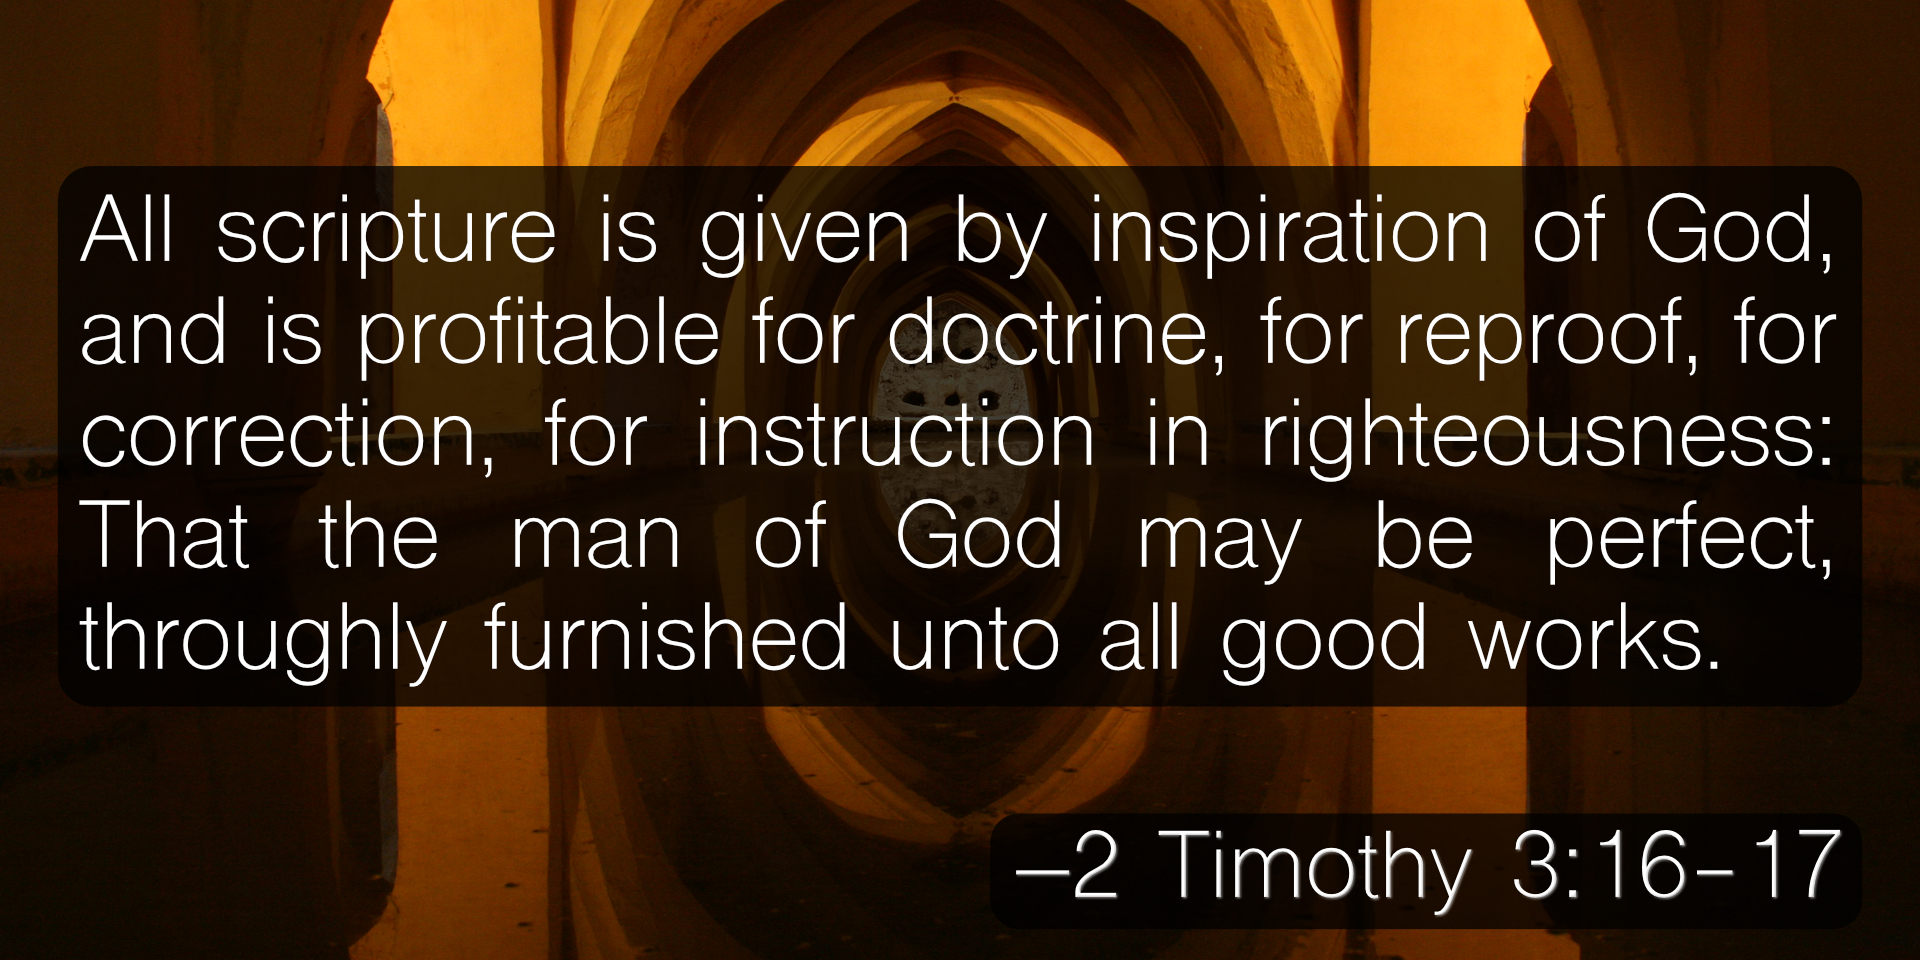 All scripture is given by inspiration of God, and is profitable for doctrine, for reproof, for correction, for instruction in righteousness: That the man of God may be perfect, throughly furnished unto all good works. –2 Timothy 3:16-17